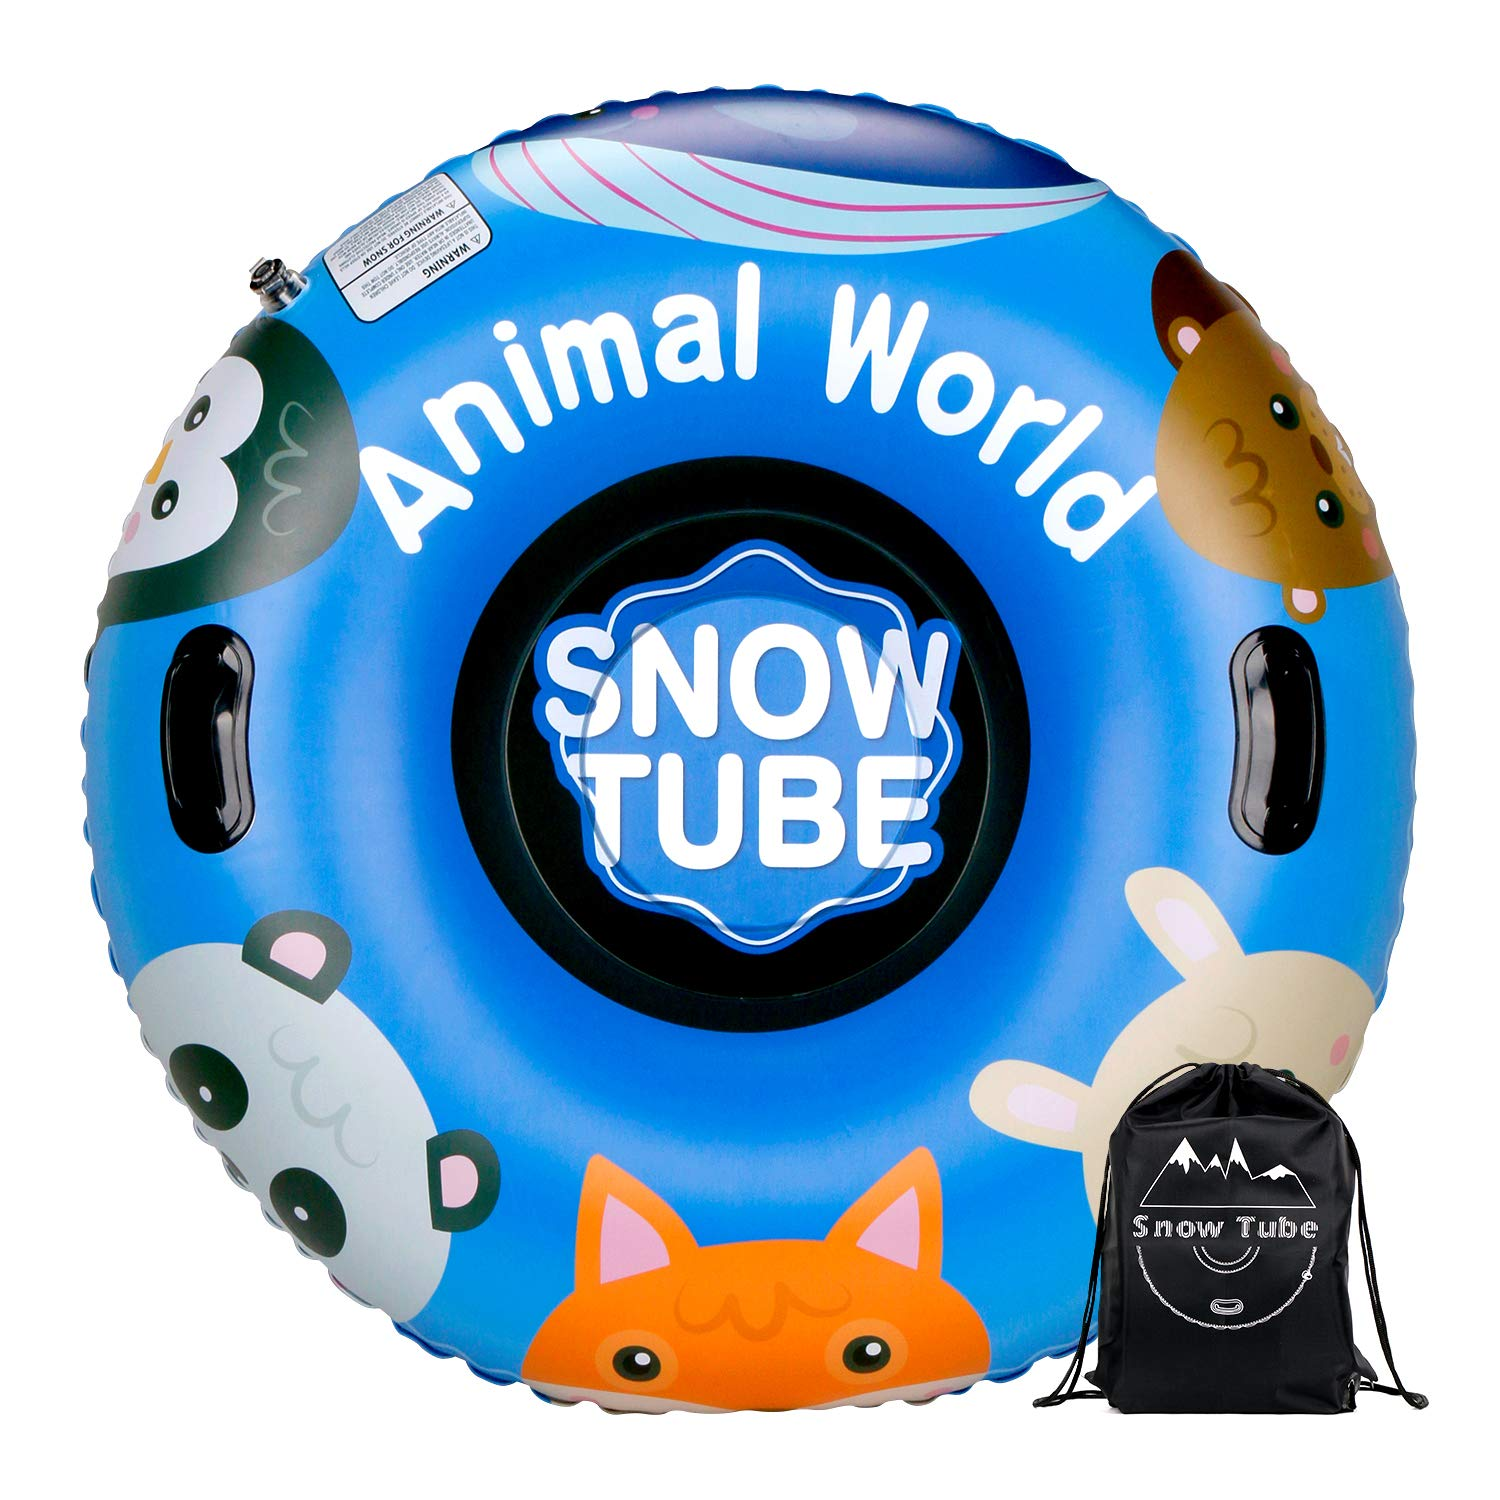 XGEAR 47 Inch Inflatable Snow Tube.